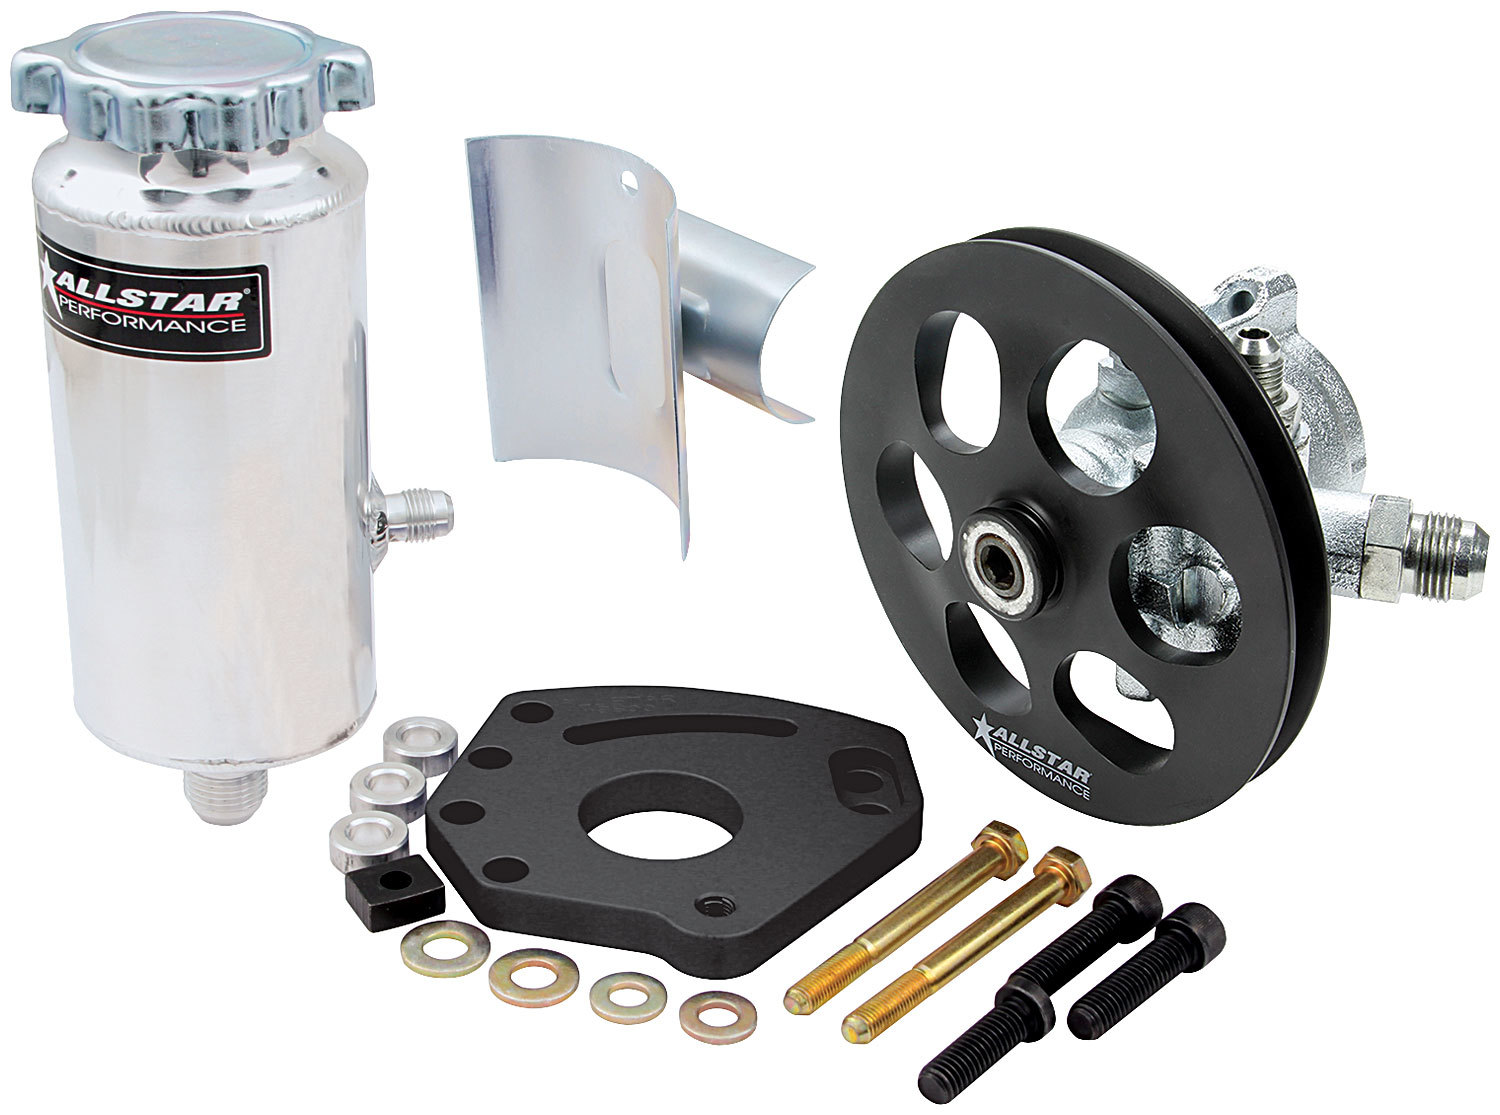 Allstar Performance 48240 Power Steering Pump, GM Type 2, 3 gpm, 1300 psi, Head Mount / Tank / V-Belt Pulley Included, Small Block Chevy, Kit